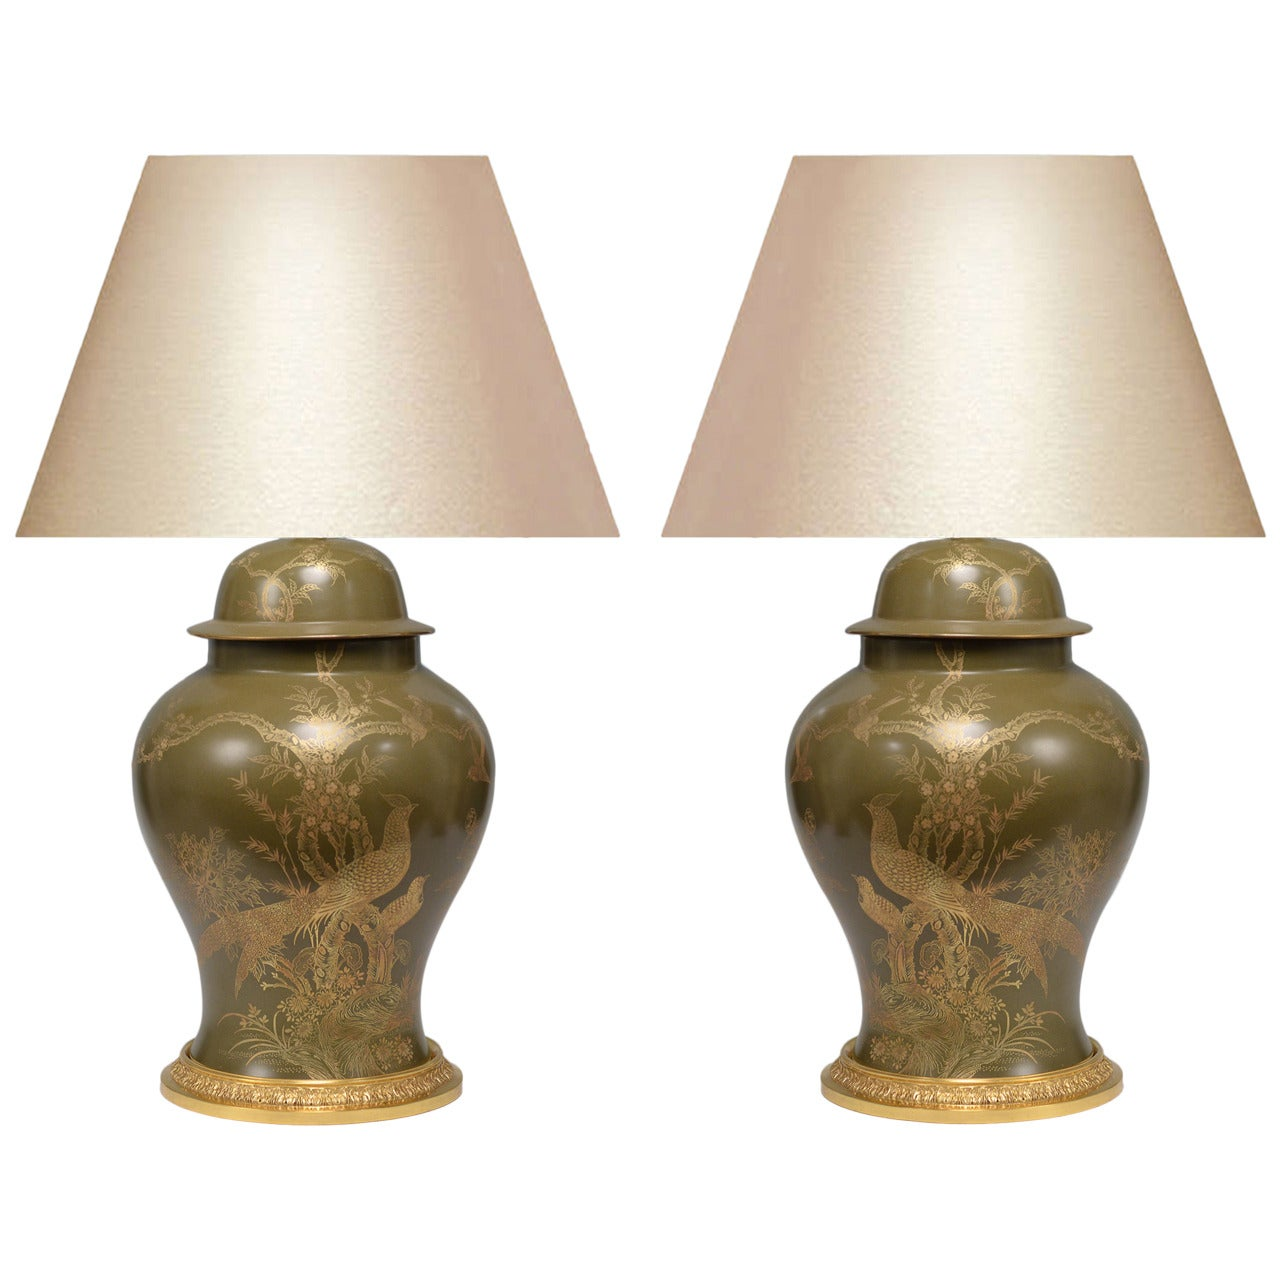 Pair of Green Glazed Porcelain Vases Mounted as Lamps